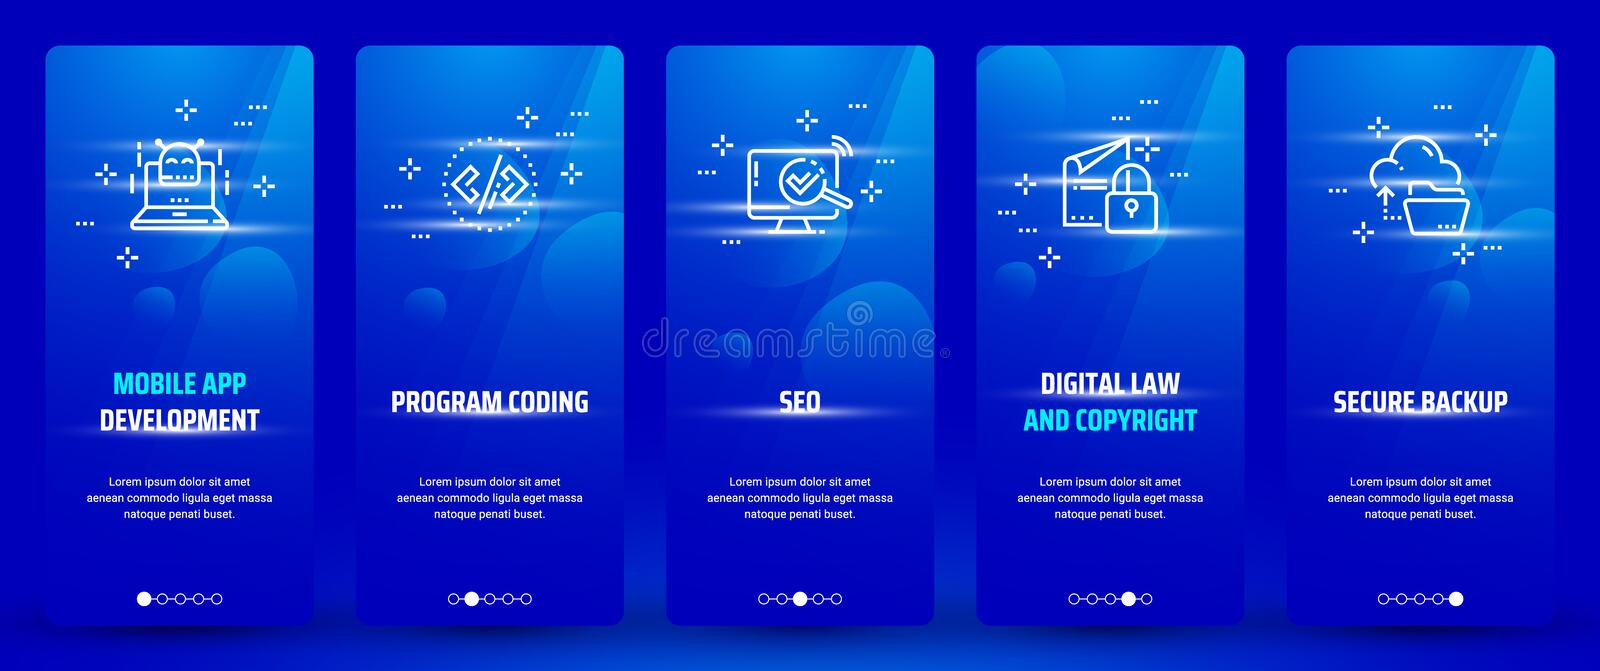 Mobile app development , Program coding, Seo, Digital law and copyright, Secure backup Vertical Cards with strong royalty free illustration